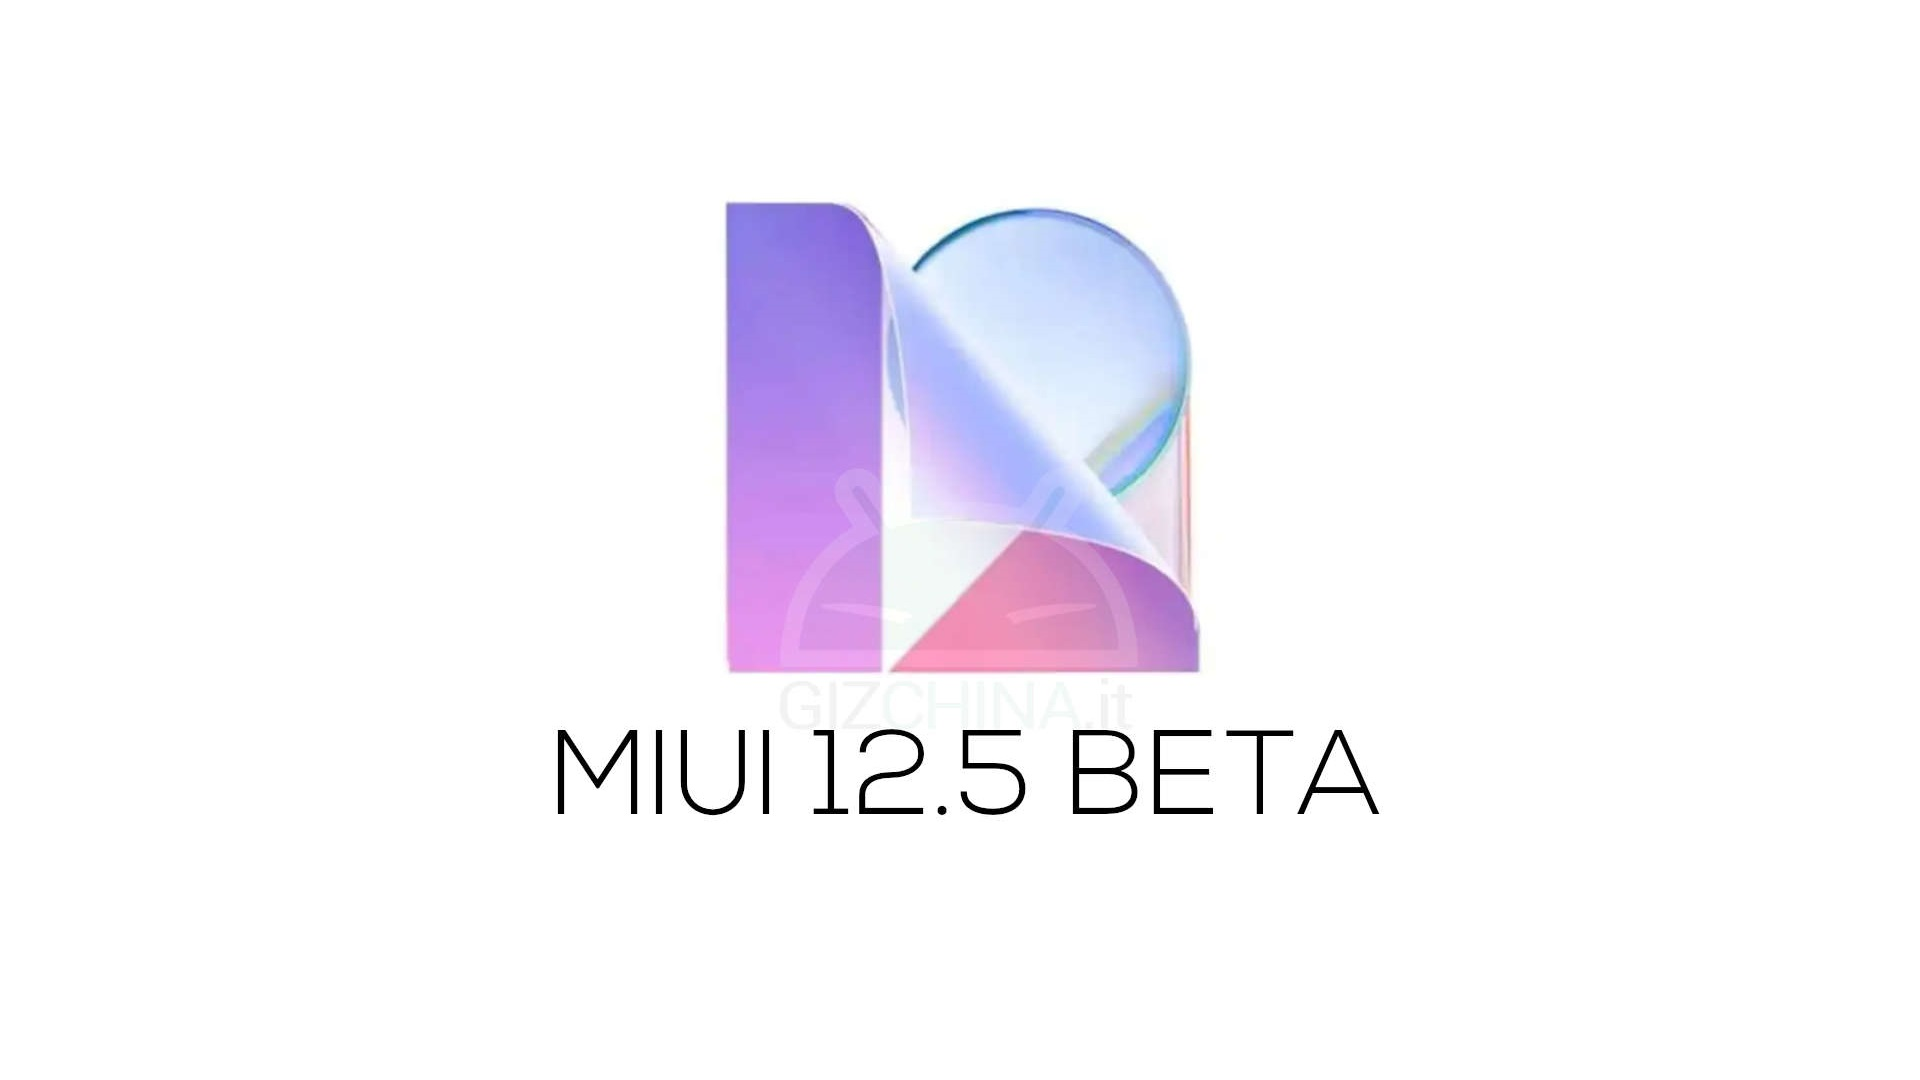 MIUI 12.5 Beta is available on several Xiaomi and Redmi devices |  Download